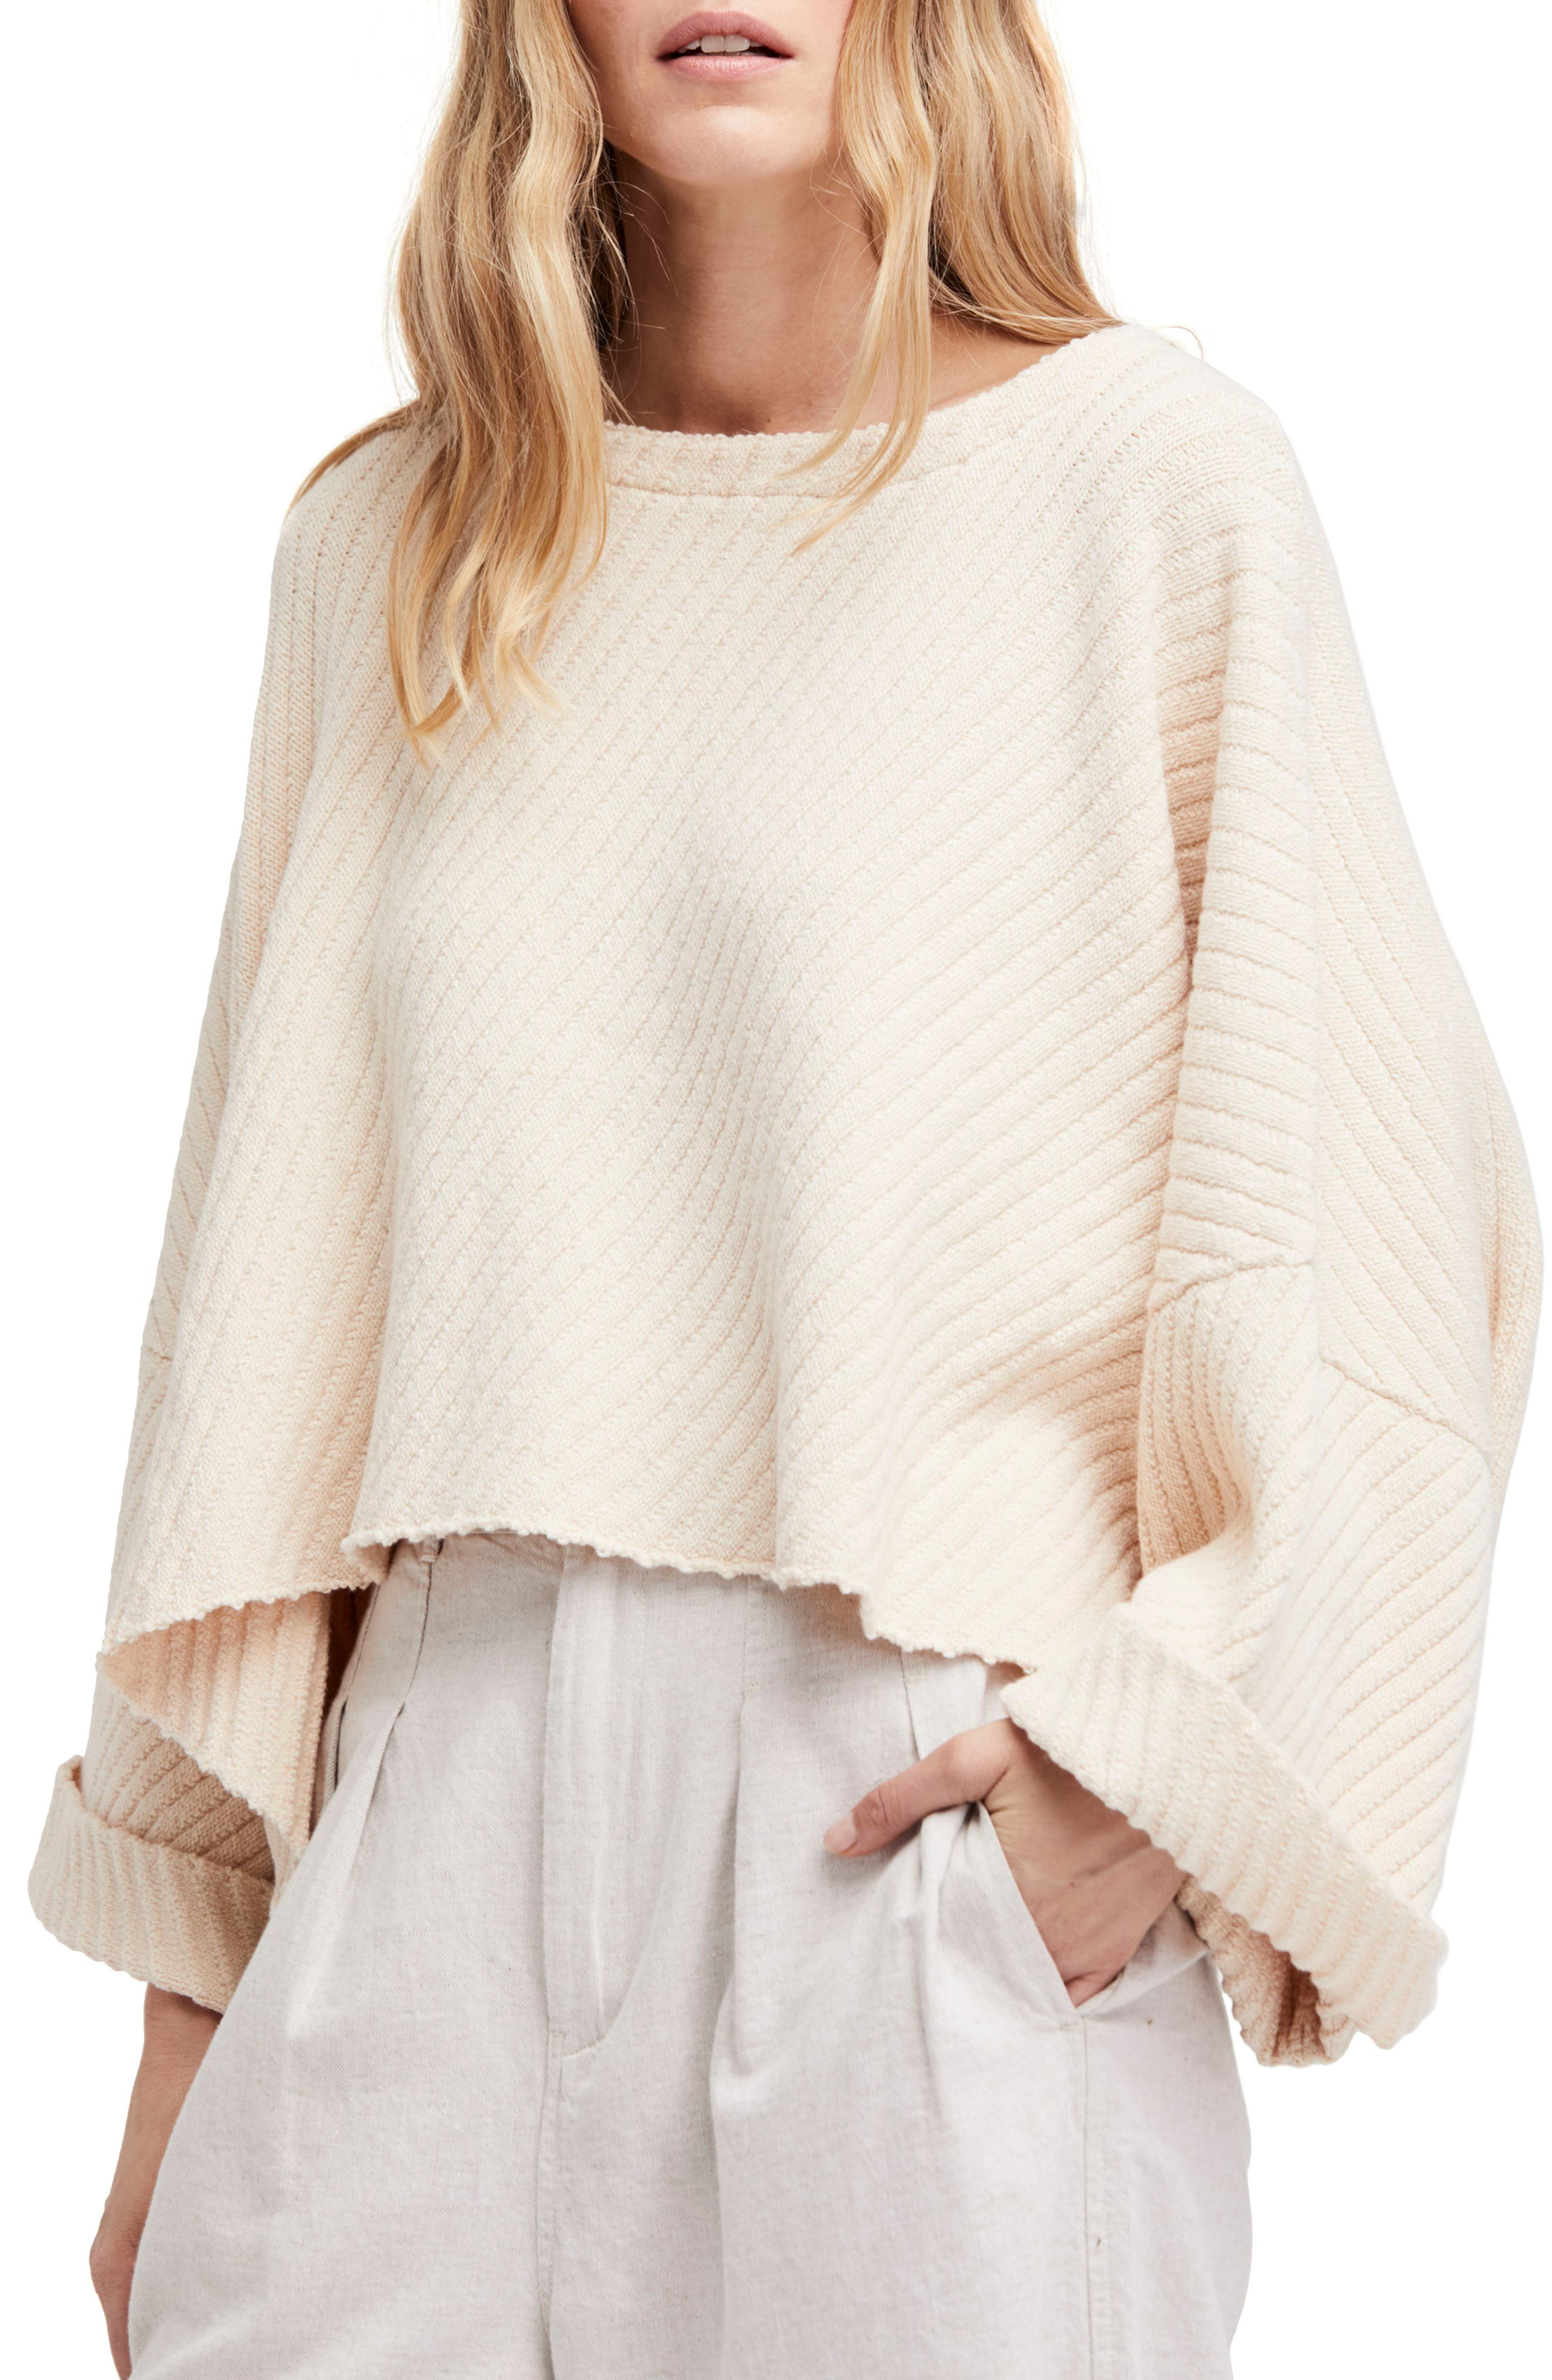 Free People I Can't Wait Crop Sweater